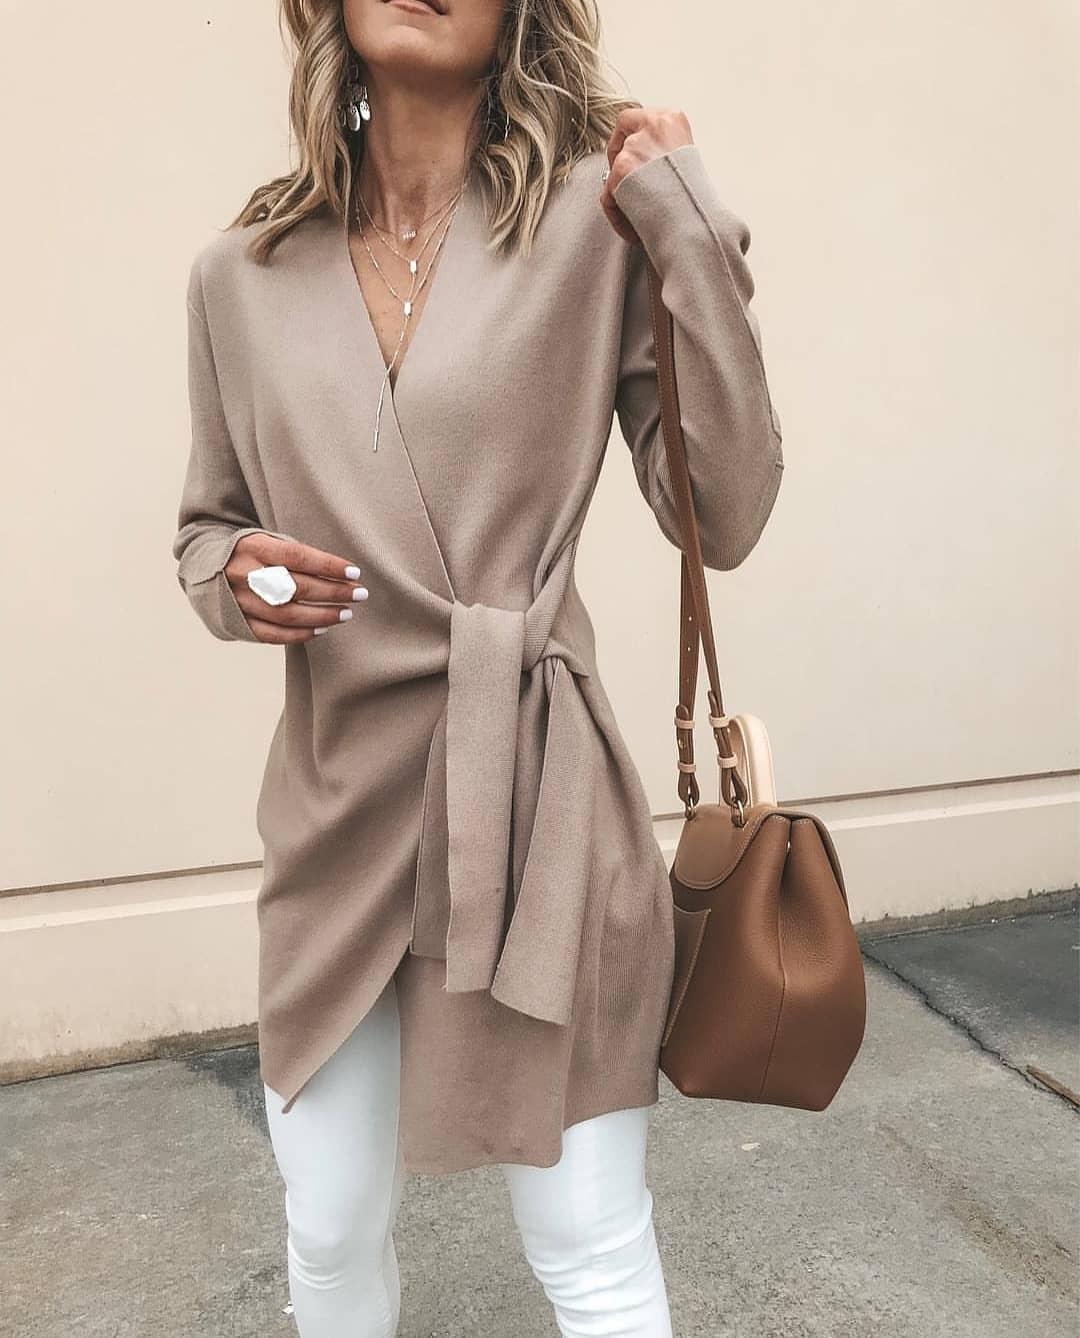 Cream Grey Wrap Cardigan And White Skinny Jeans For Spring 2019